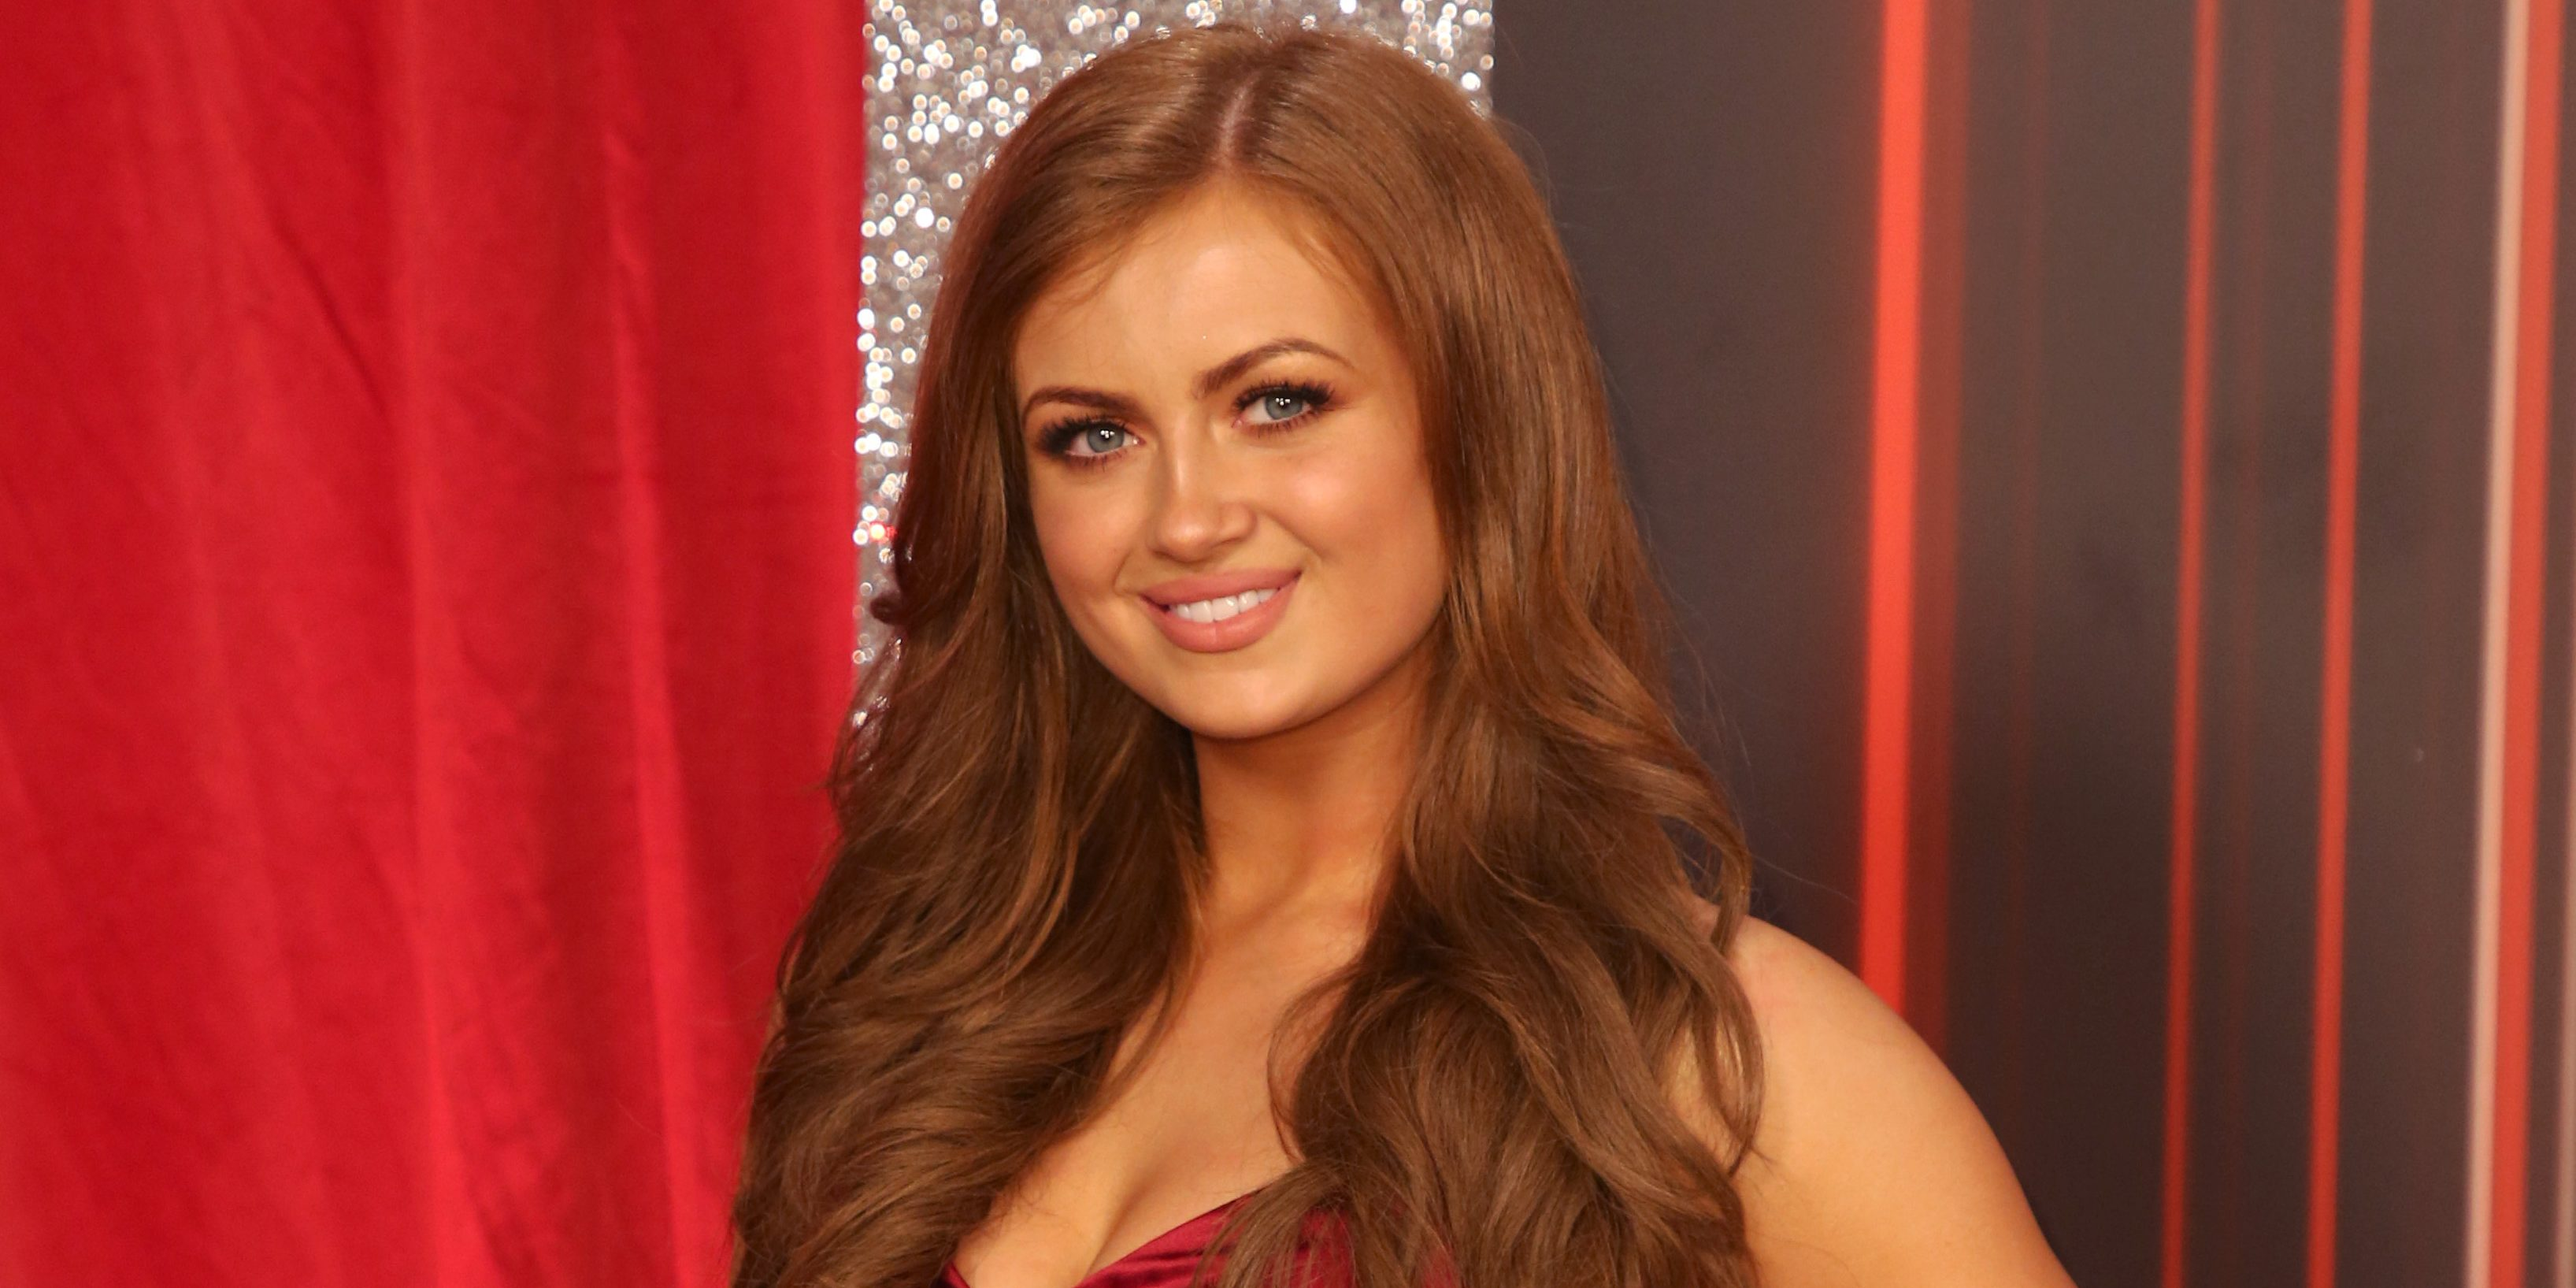 EastEnders star Maisie Smith stuns fans with amazing vocals in new video clip